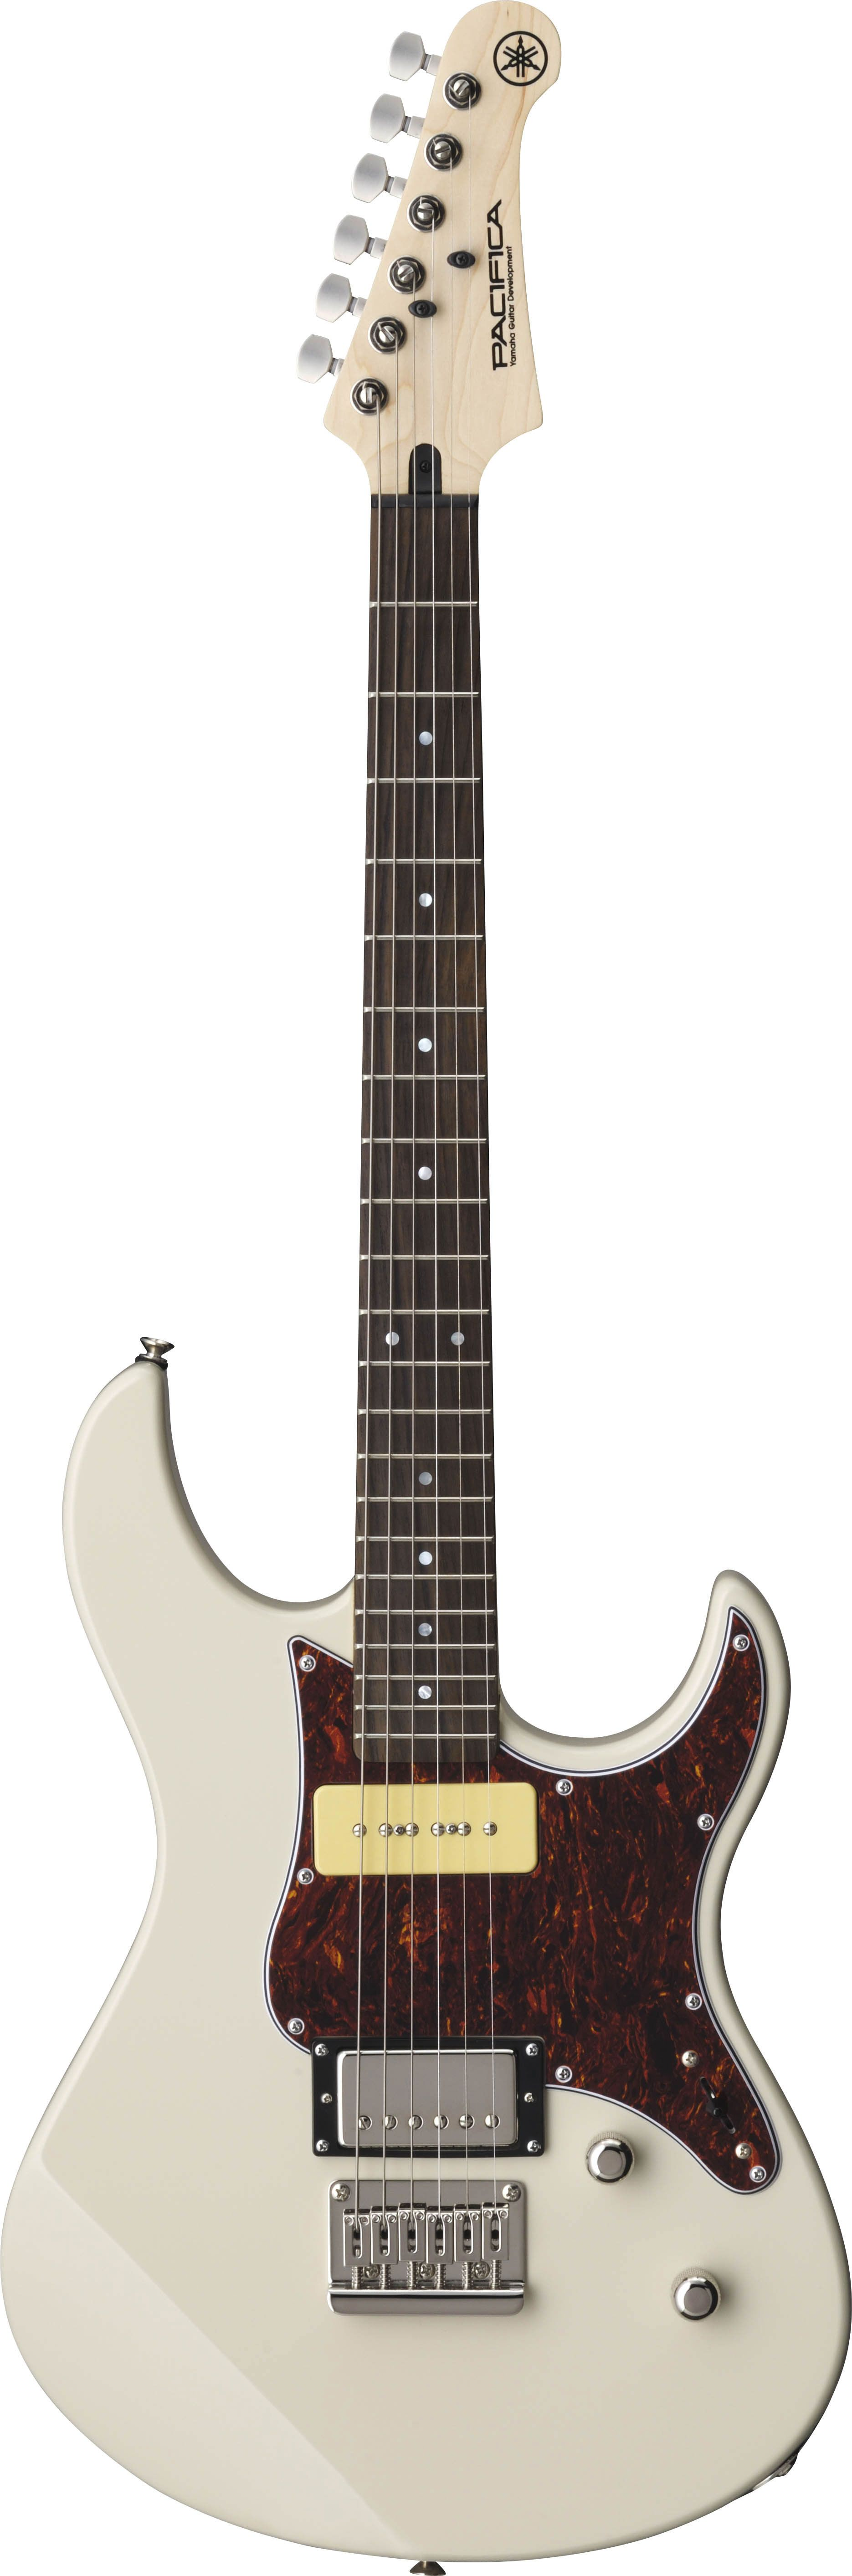 Yamaha Pacifica 311h Vintage White This Could Indeed Be My Next Guitar Yamaha Guitar Guitar Electric Guitar